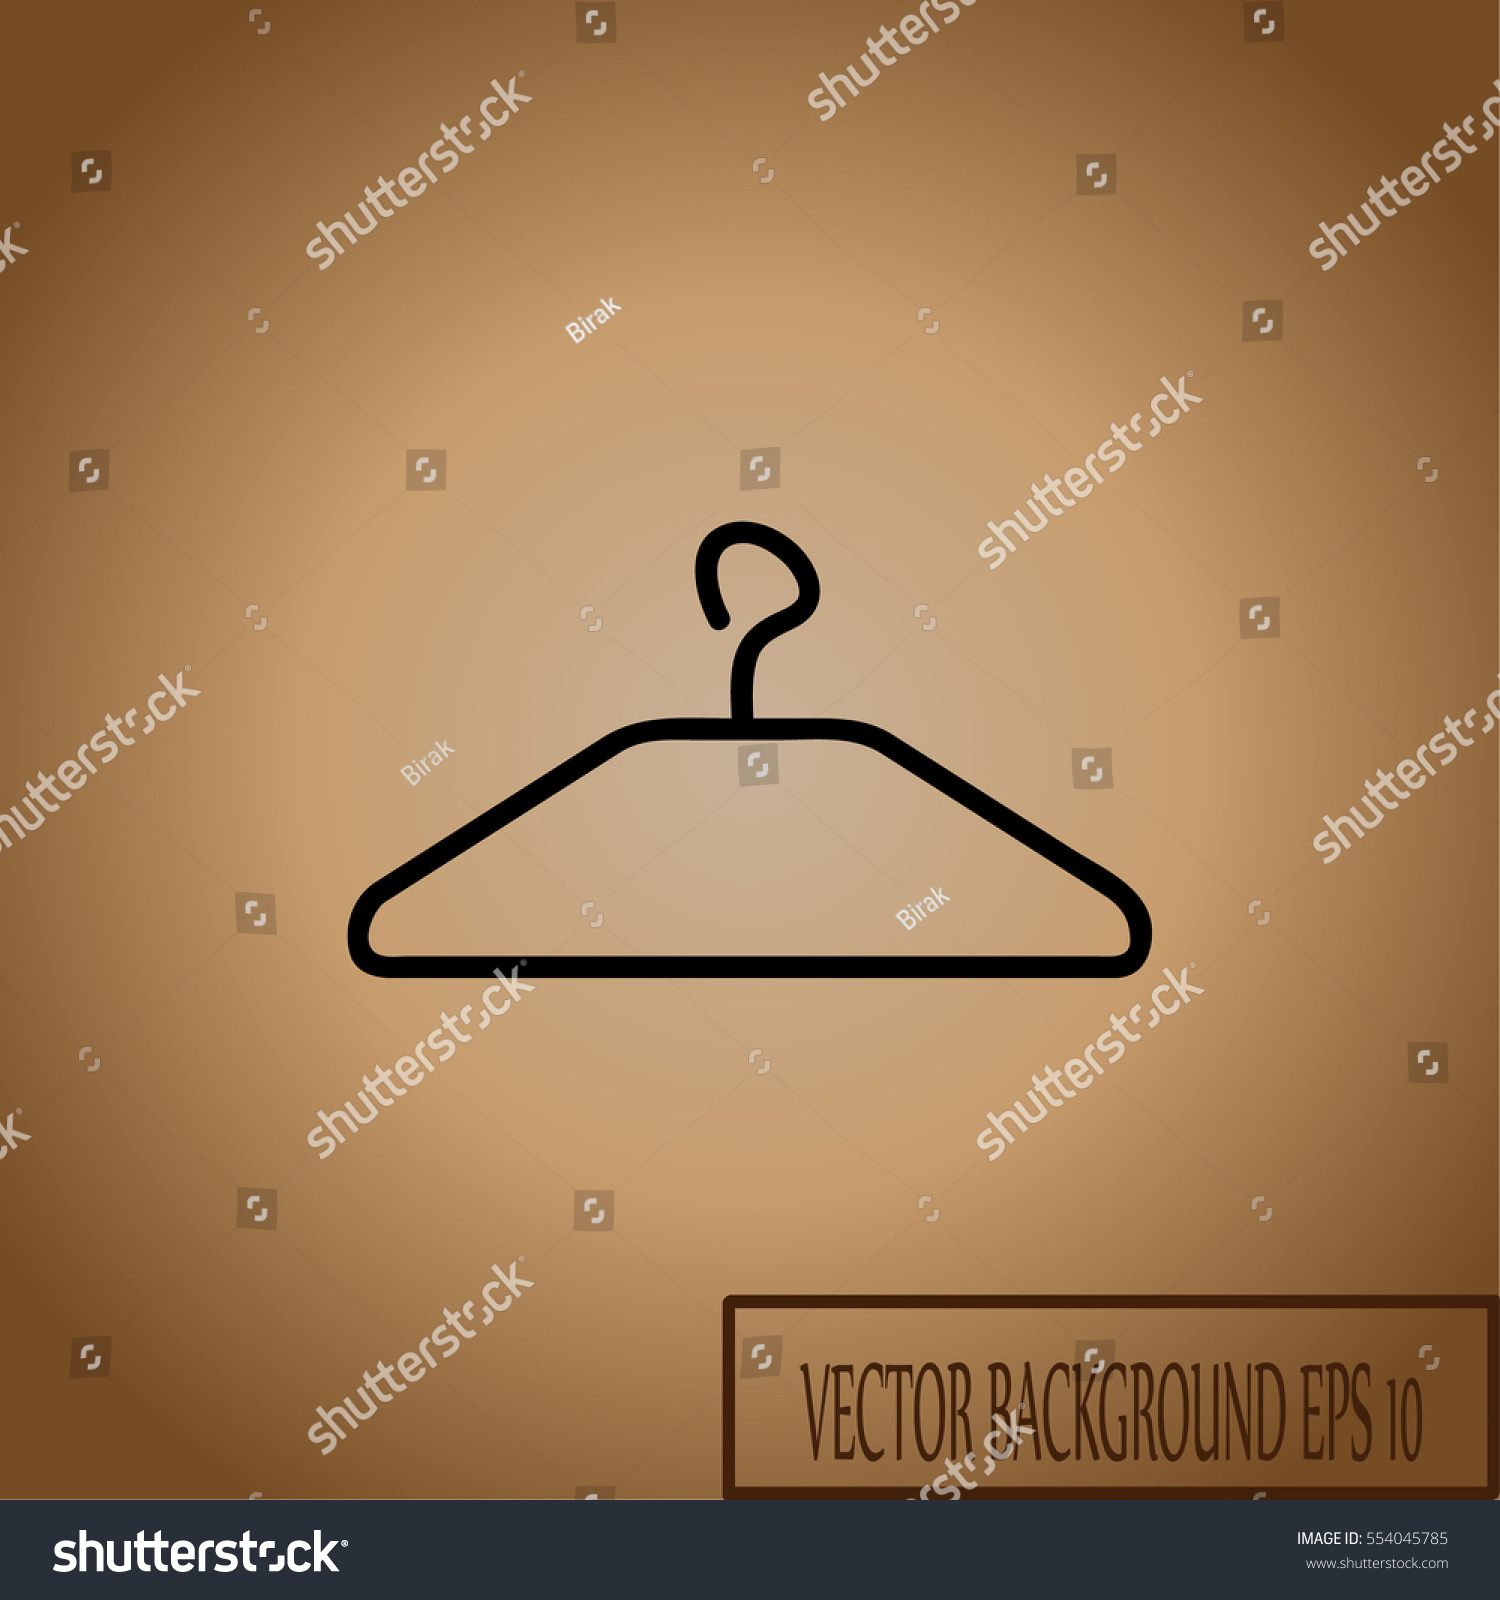 Clothes hanger vector illustration coat rack stock vector clothes hanger vector illustration coat rack for hanging apparel with a hook on top biocorpaavc